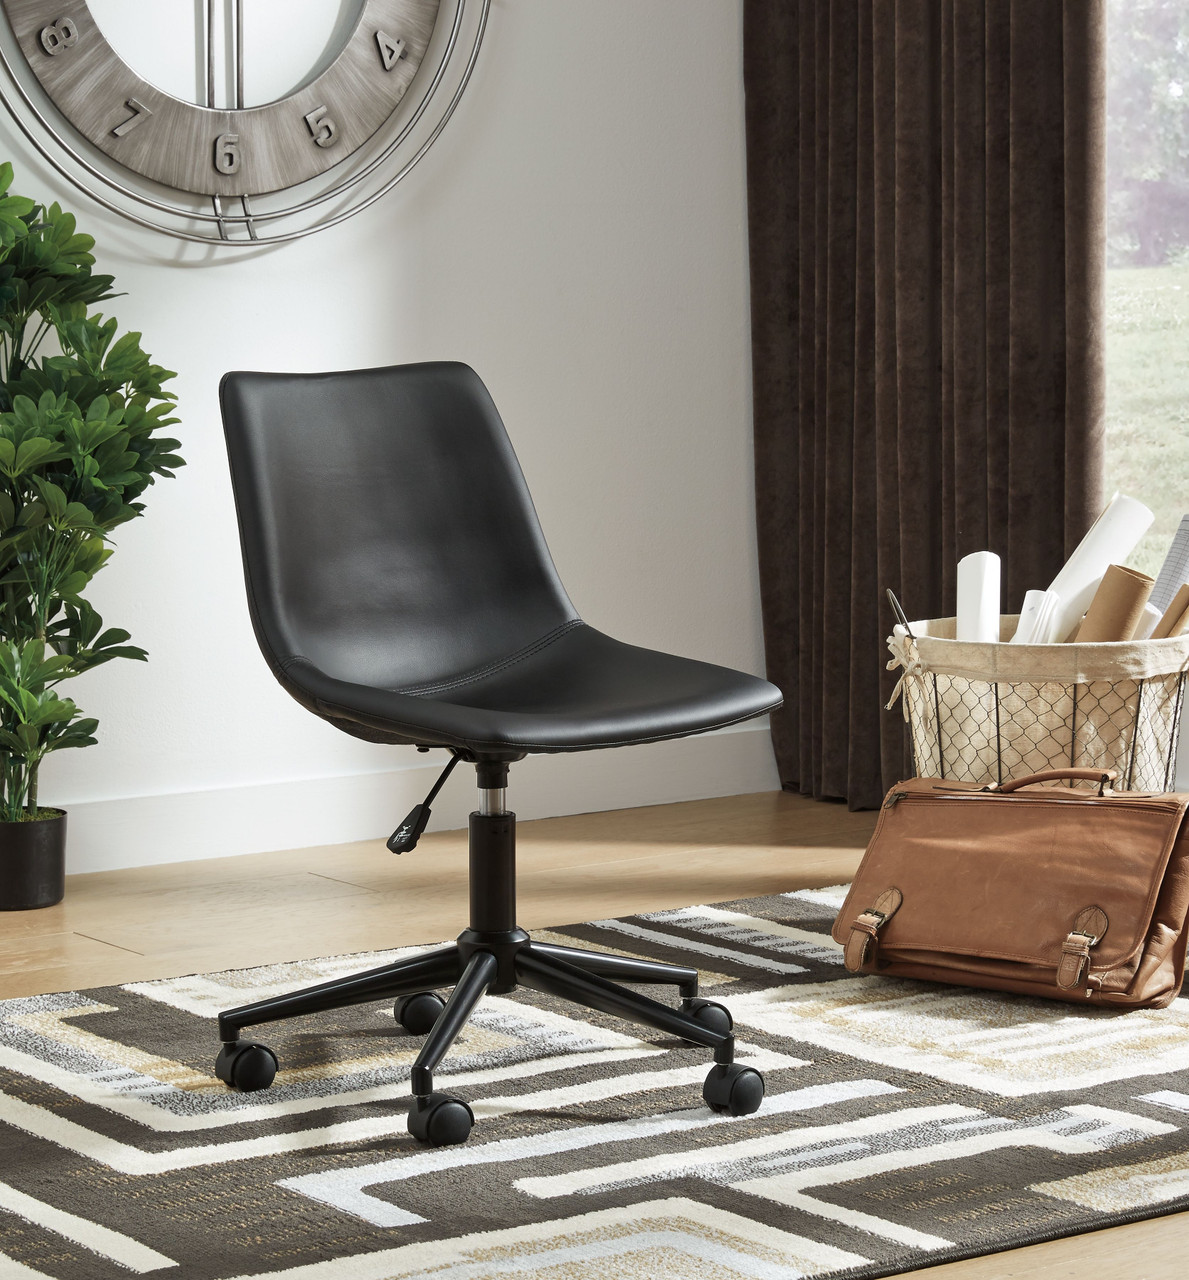 The Office Chair Program Black Home Office Swivel Desk Chair Available At Regal House Outlet Serving New Bedford Ma And Surrounding Areas